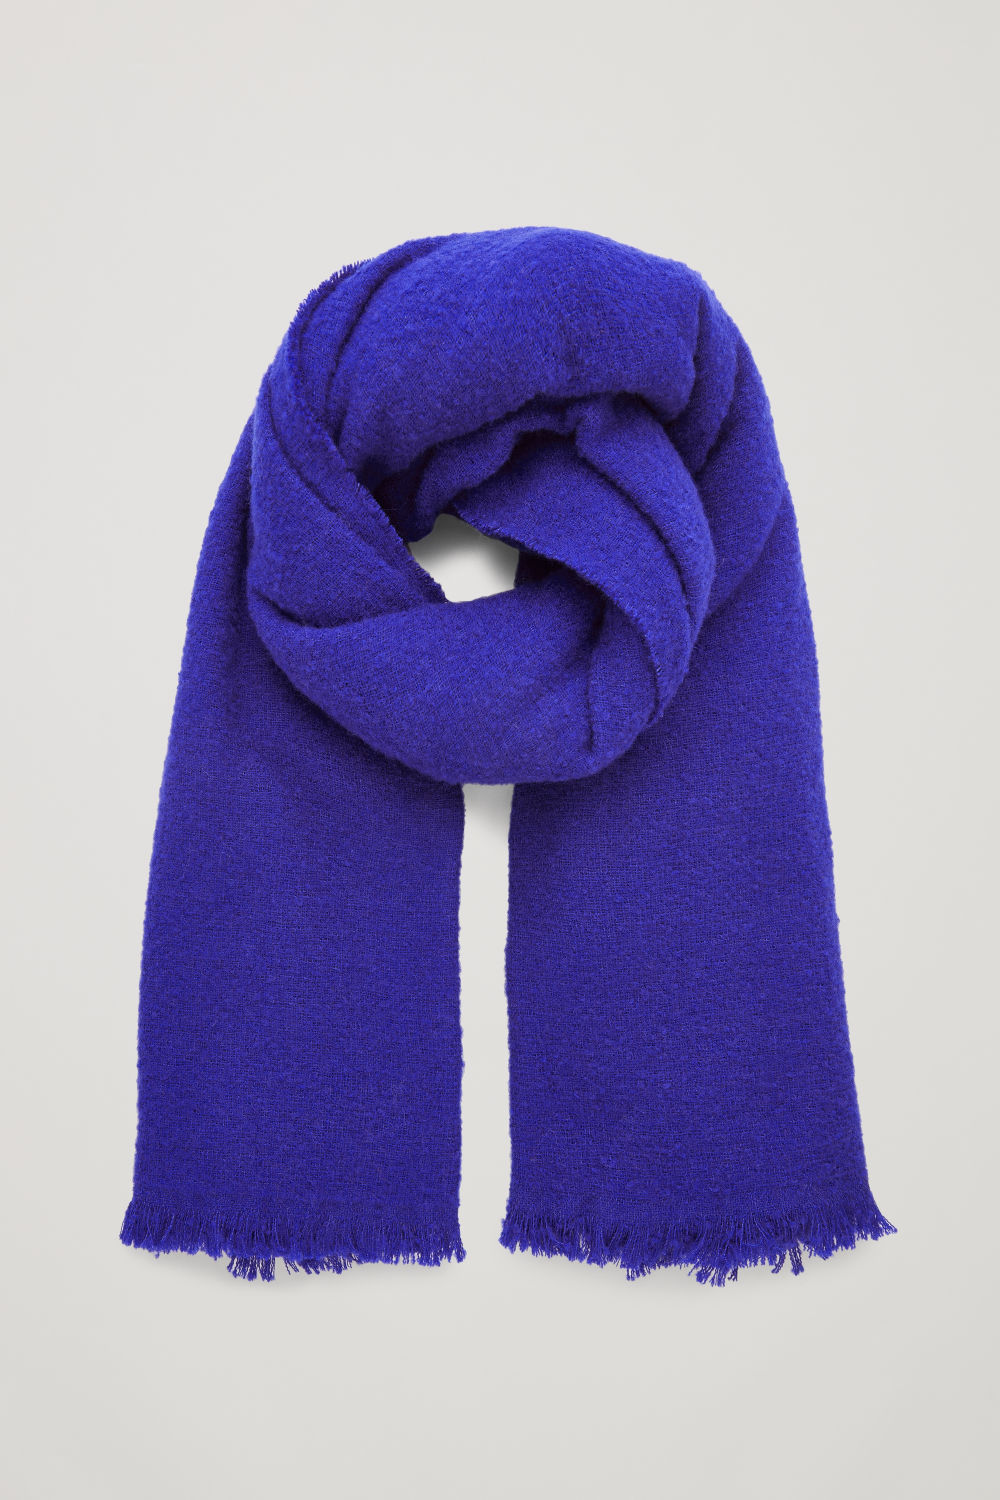 코스 COS WOOL BLANKET SCARF,Electric blue